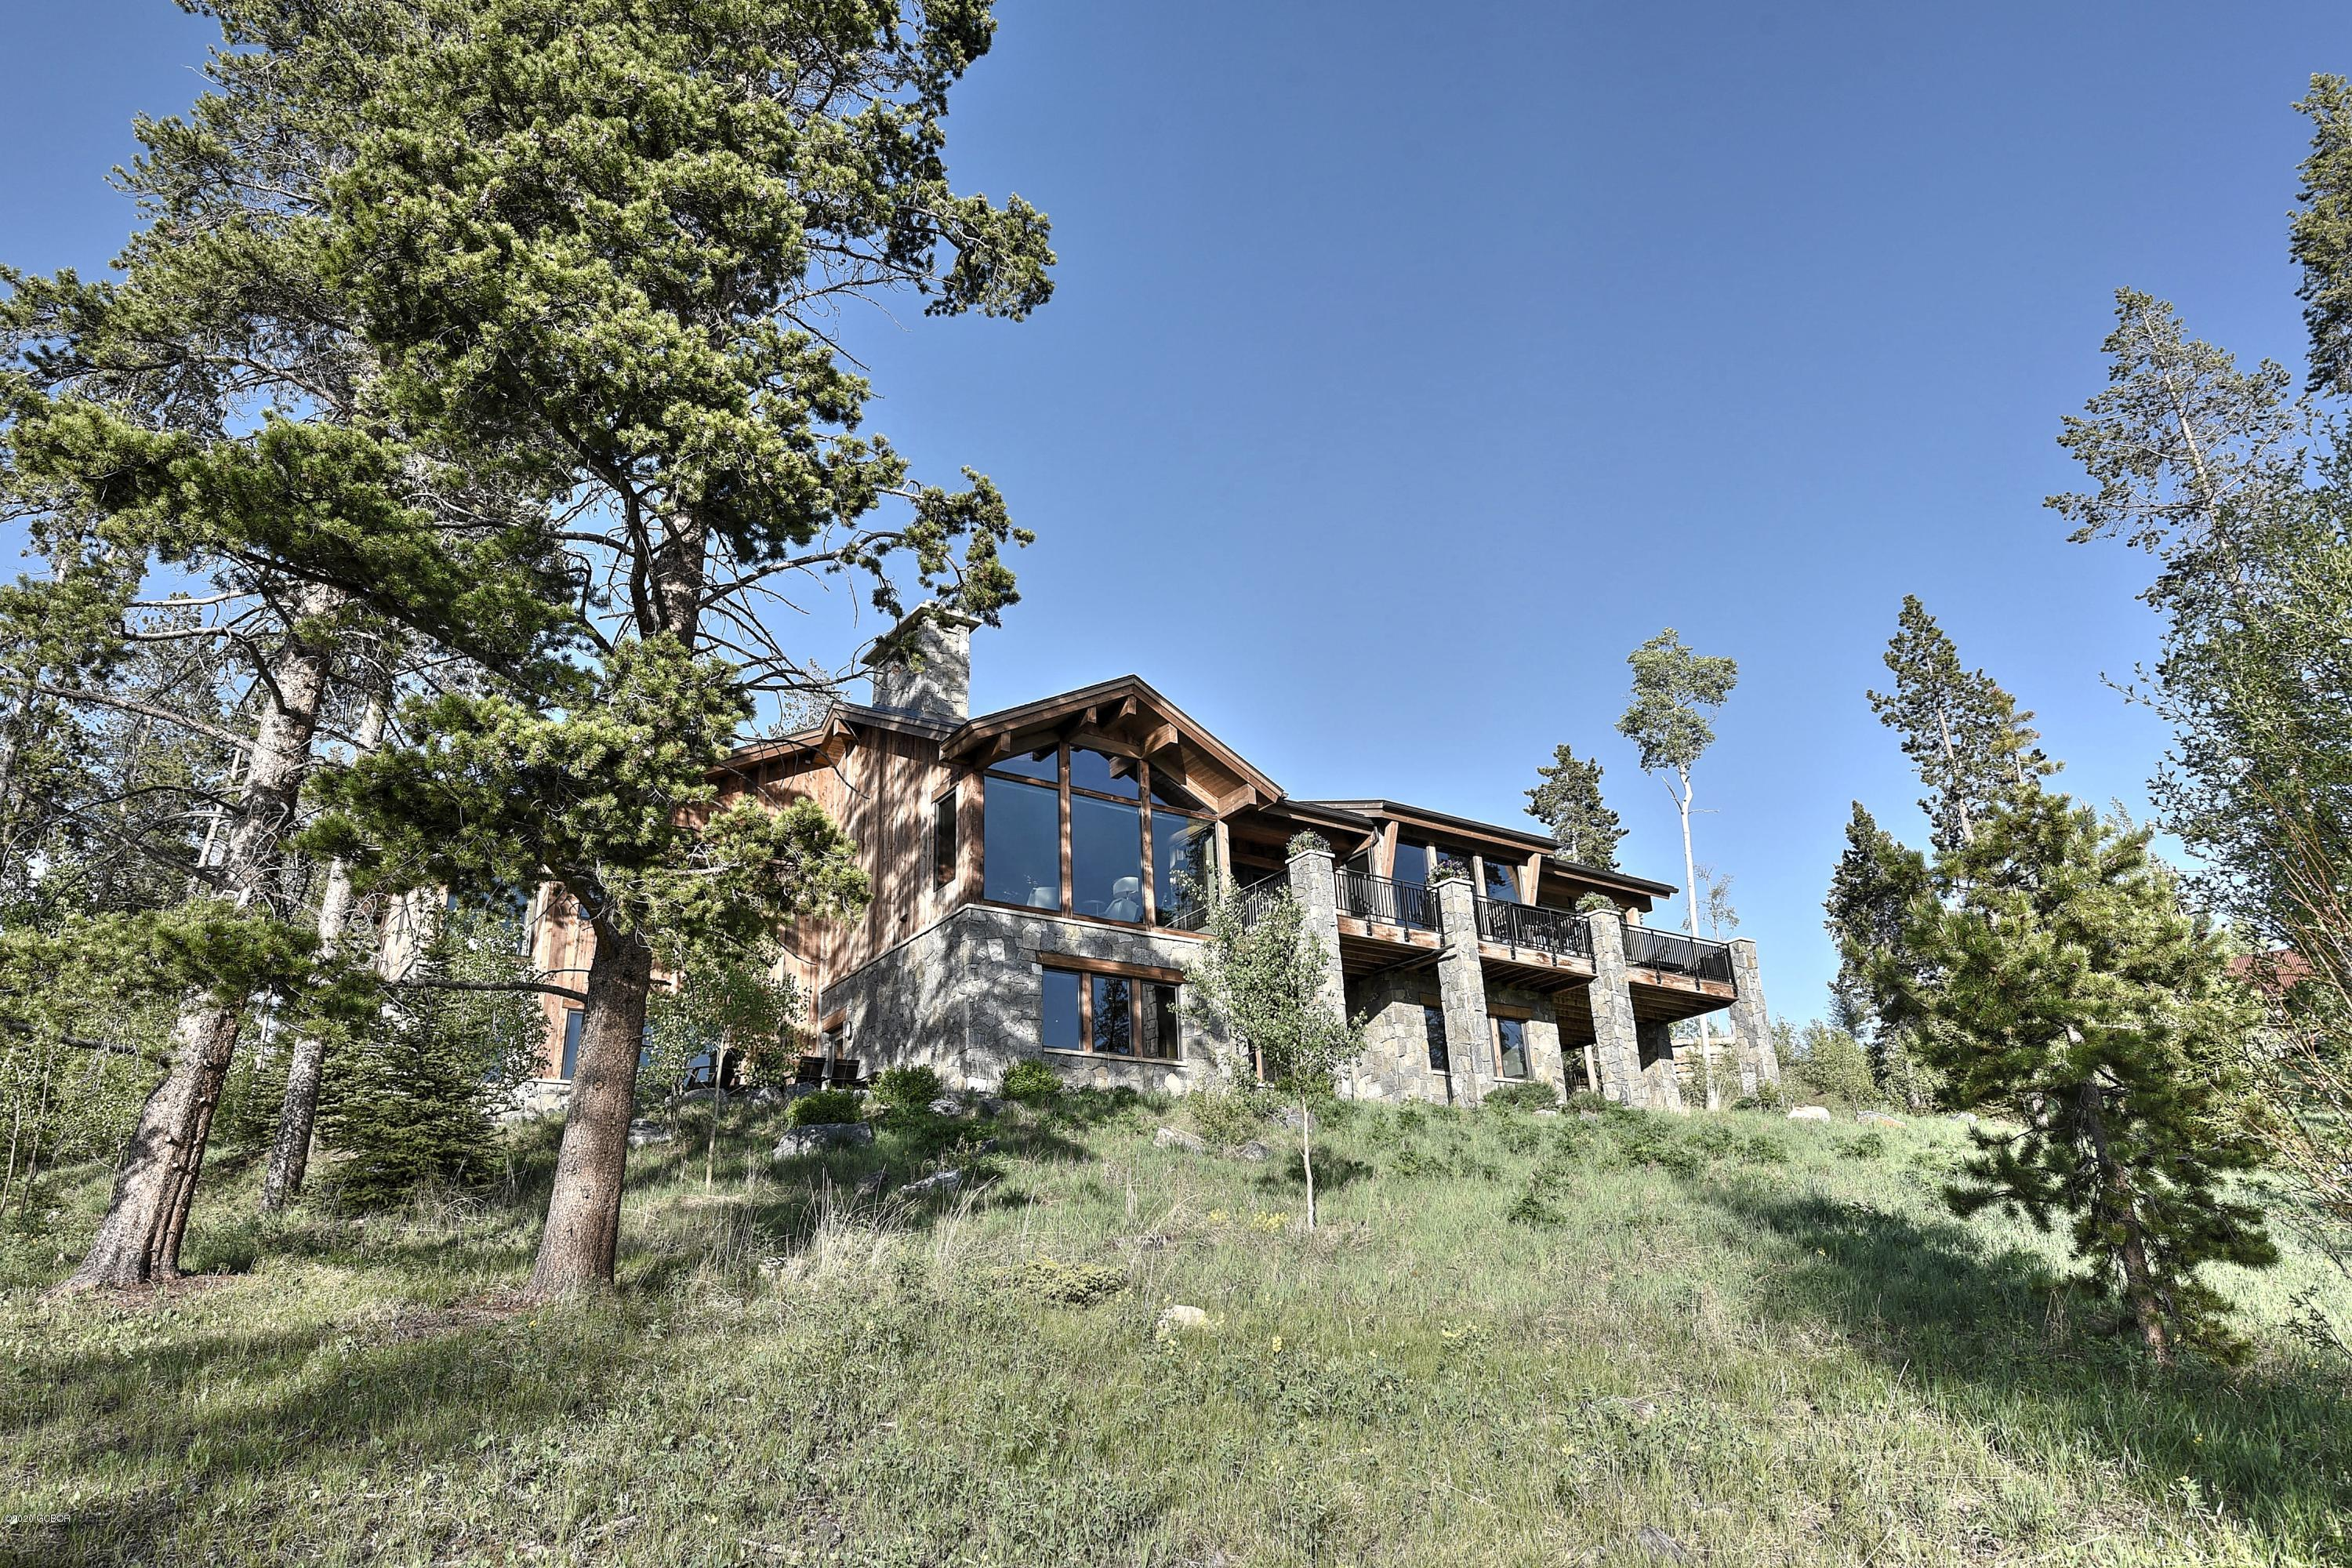 MLS# 20-1050 - 1 - 98 Engleman Stand  #, Fraser, CO 80442